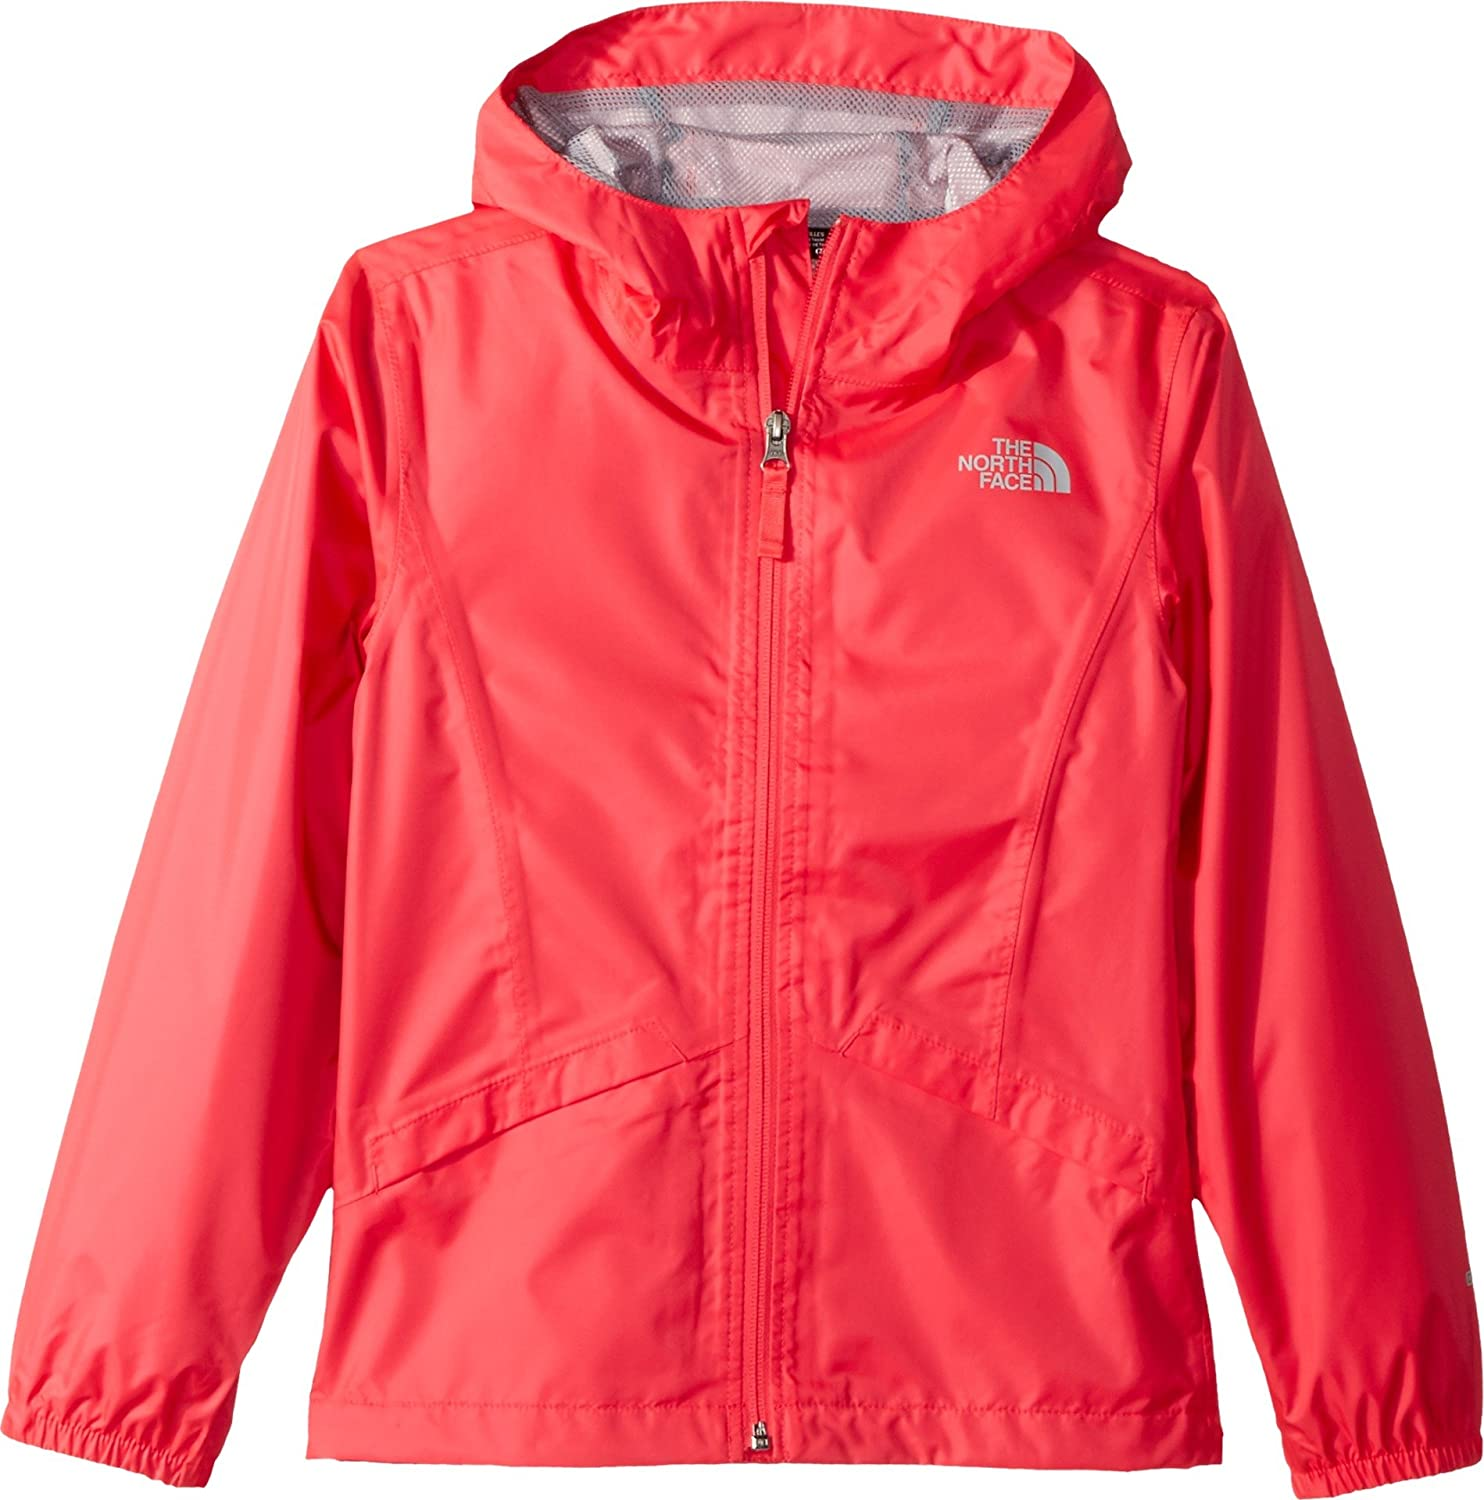 The North Face Girls' Zipline Rain Jacket 2U3F